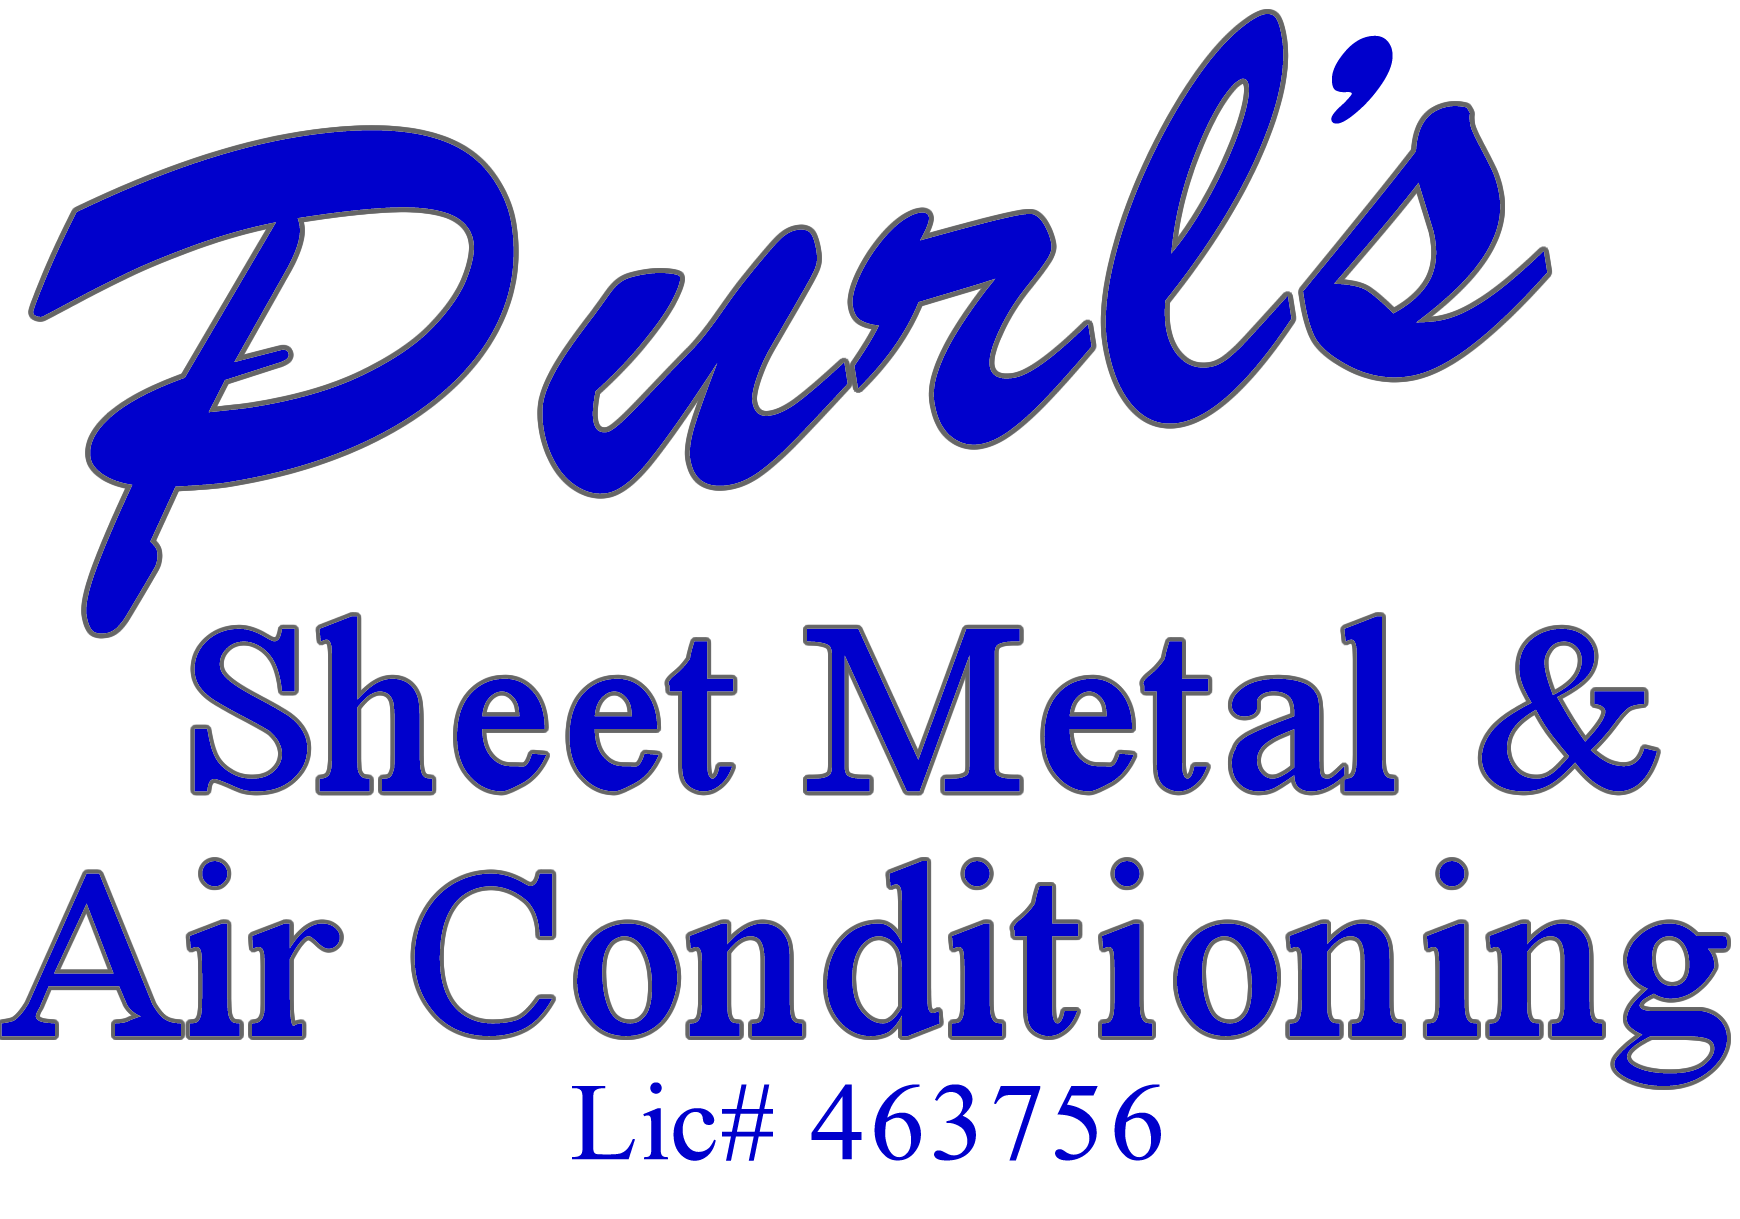 Purl S Sheet Metal Air Conditioniong Madera Ca Specializing In